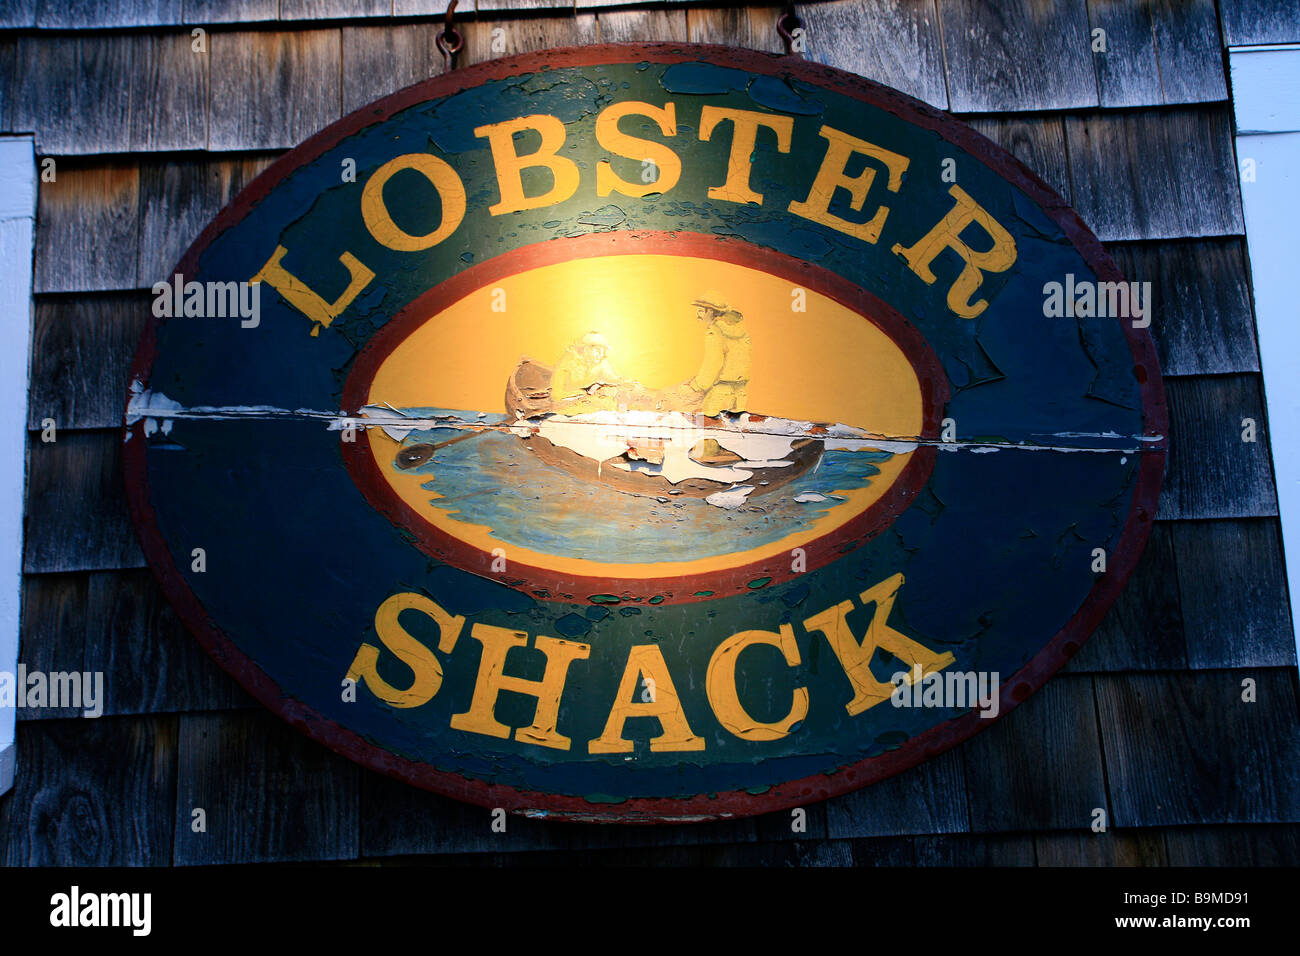 Unites States, Maine, Ogunquit, lobster fishing sign in the port - Stock Image